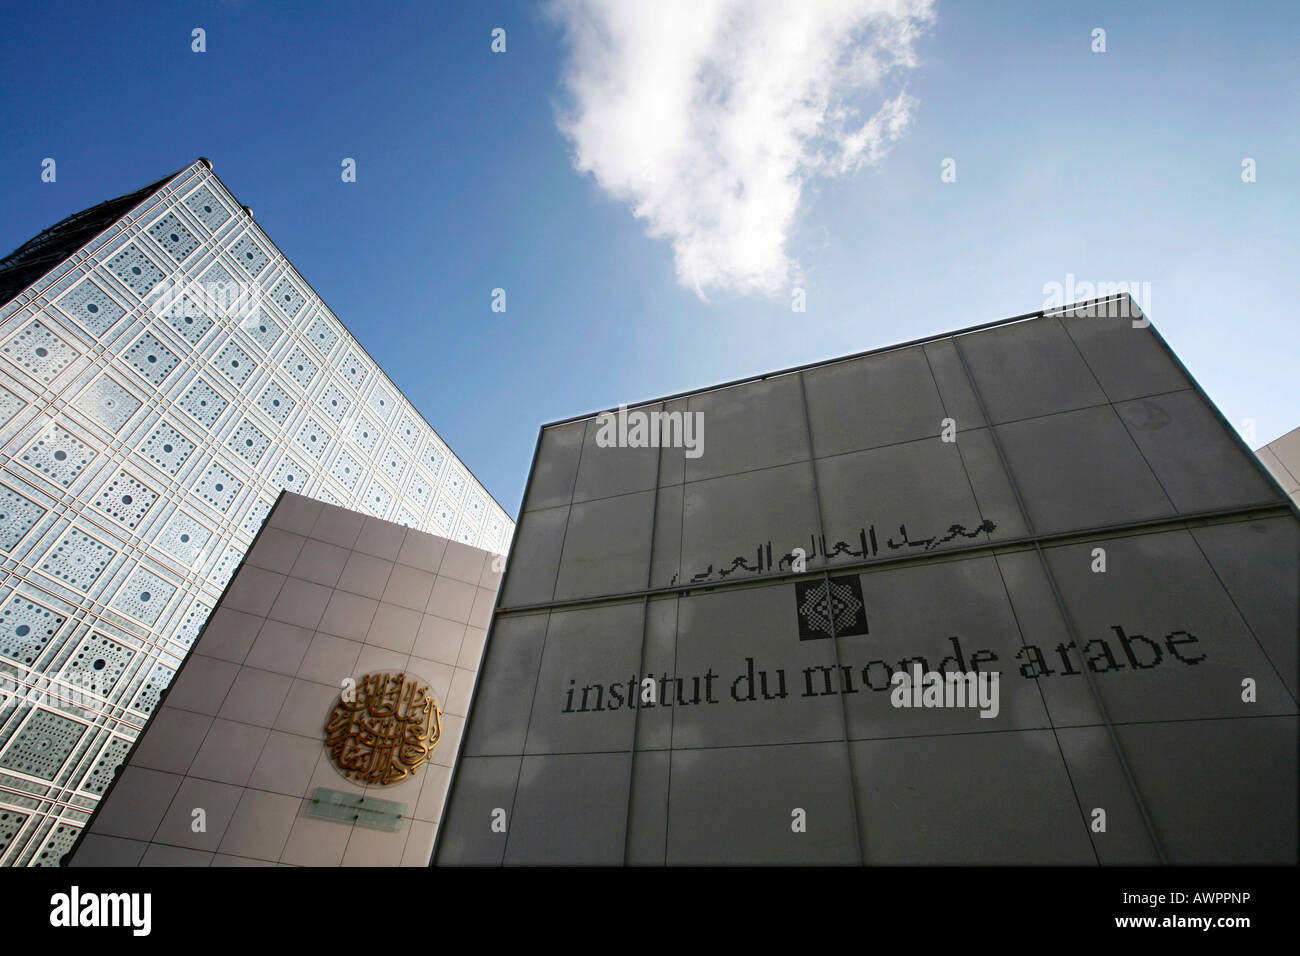 Institut du Monde Arabe building, Quartier Latin, Paris, France, Europe Stock Photo